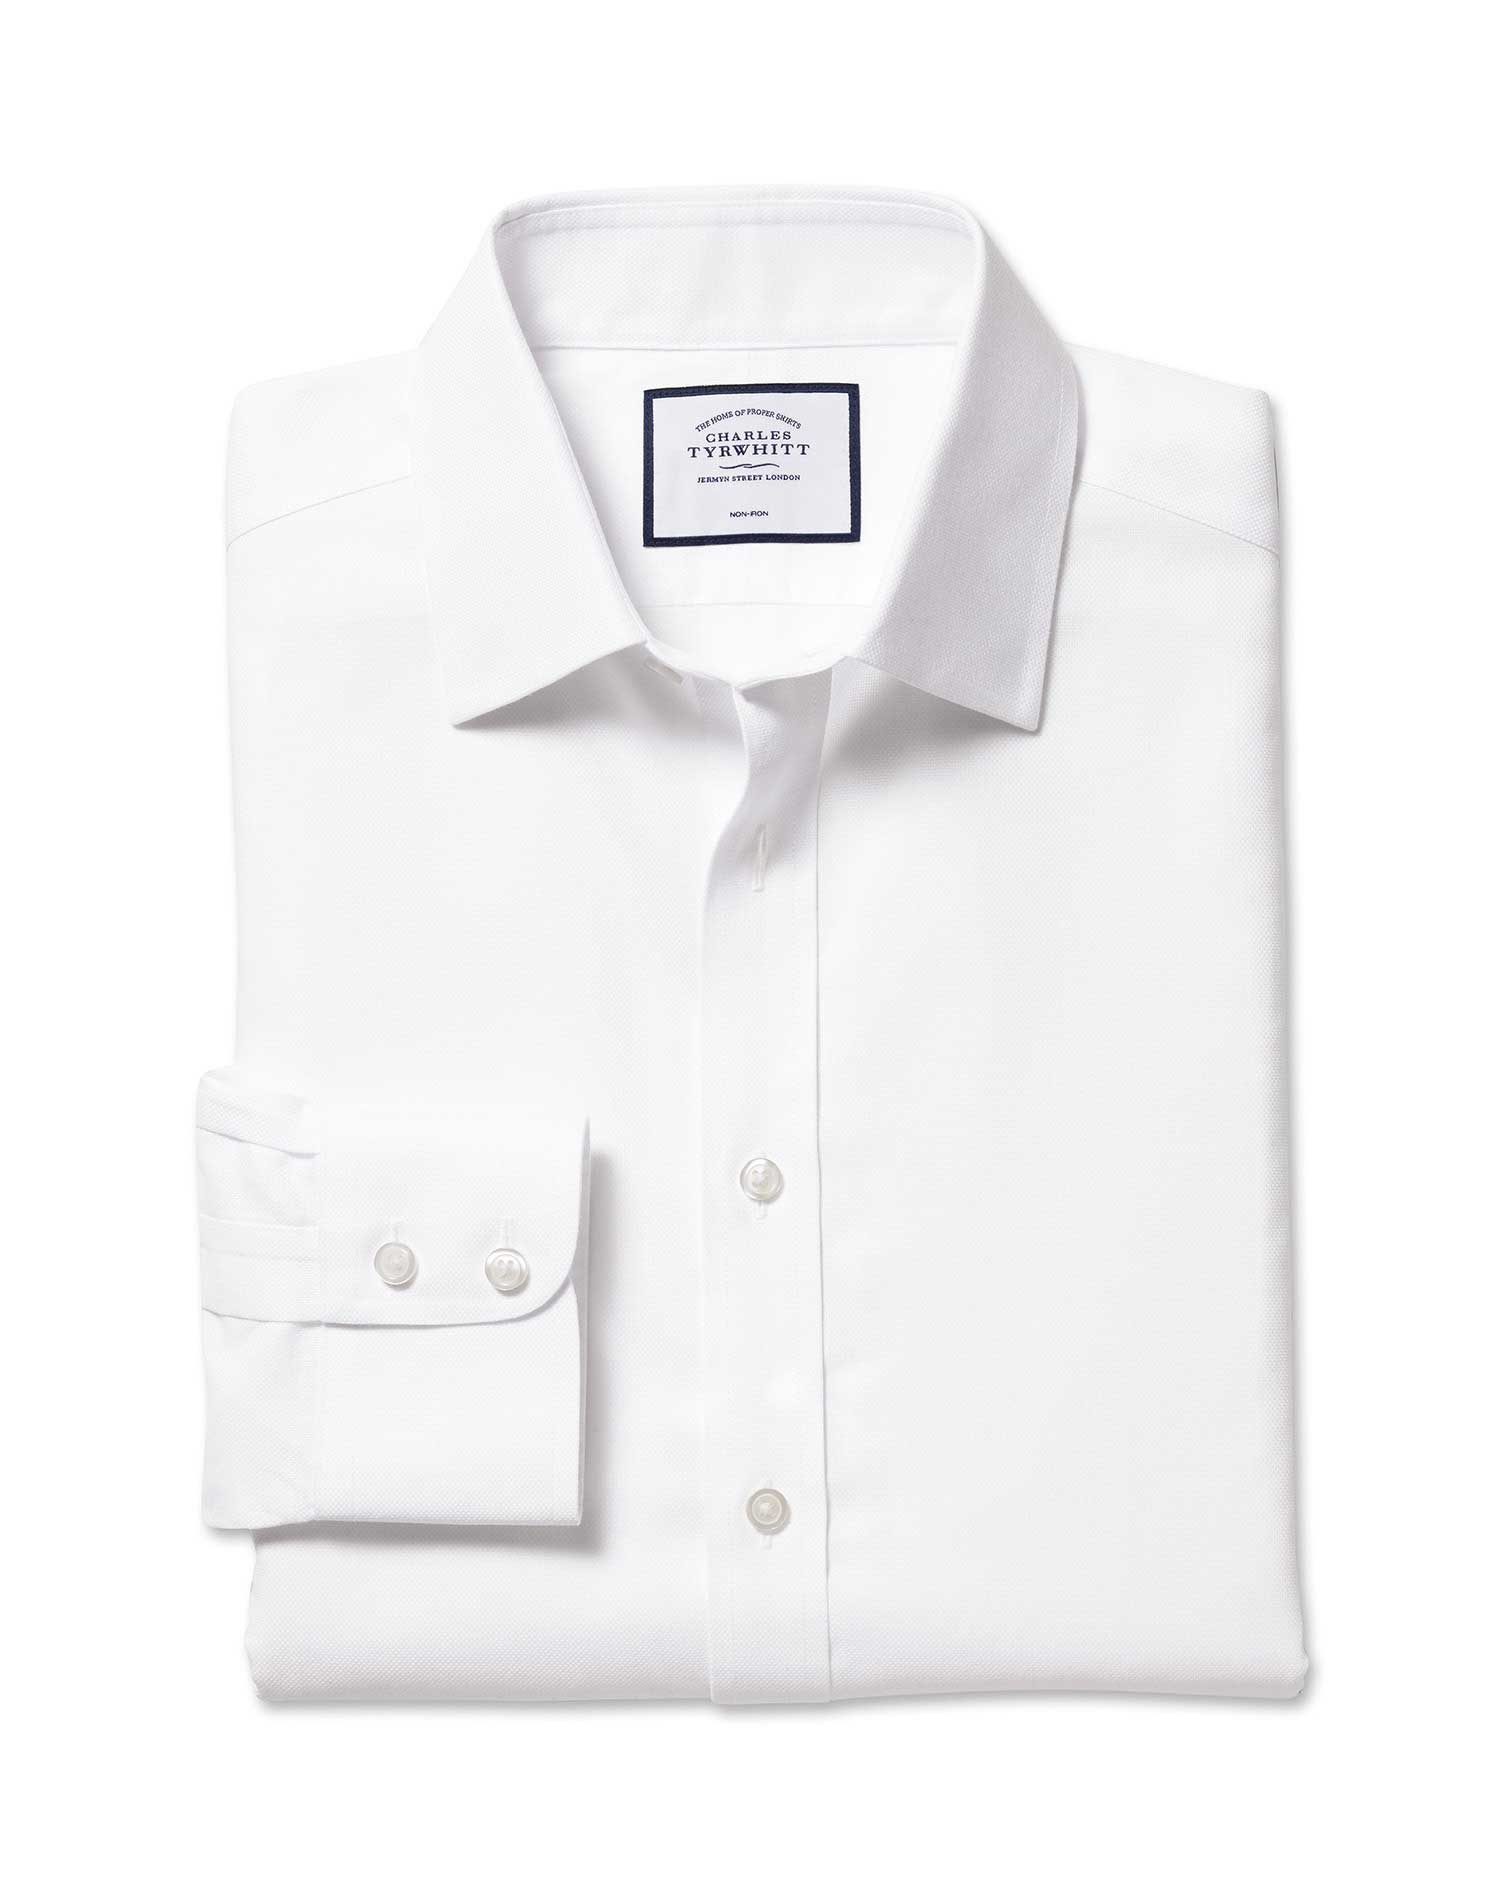 Classic Fit Non-Iron Royal Panama White Cotton Formal Shirt Single Cuff Size 17/37 by Charles Tyrwhi